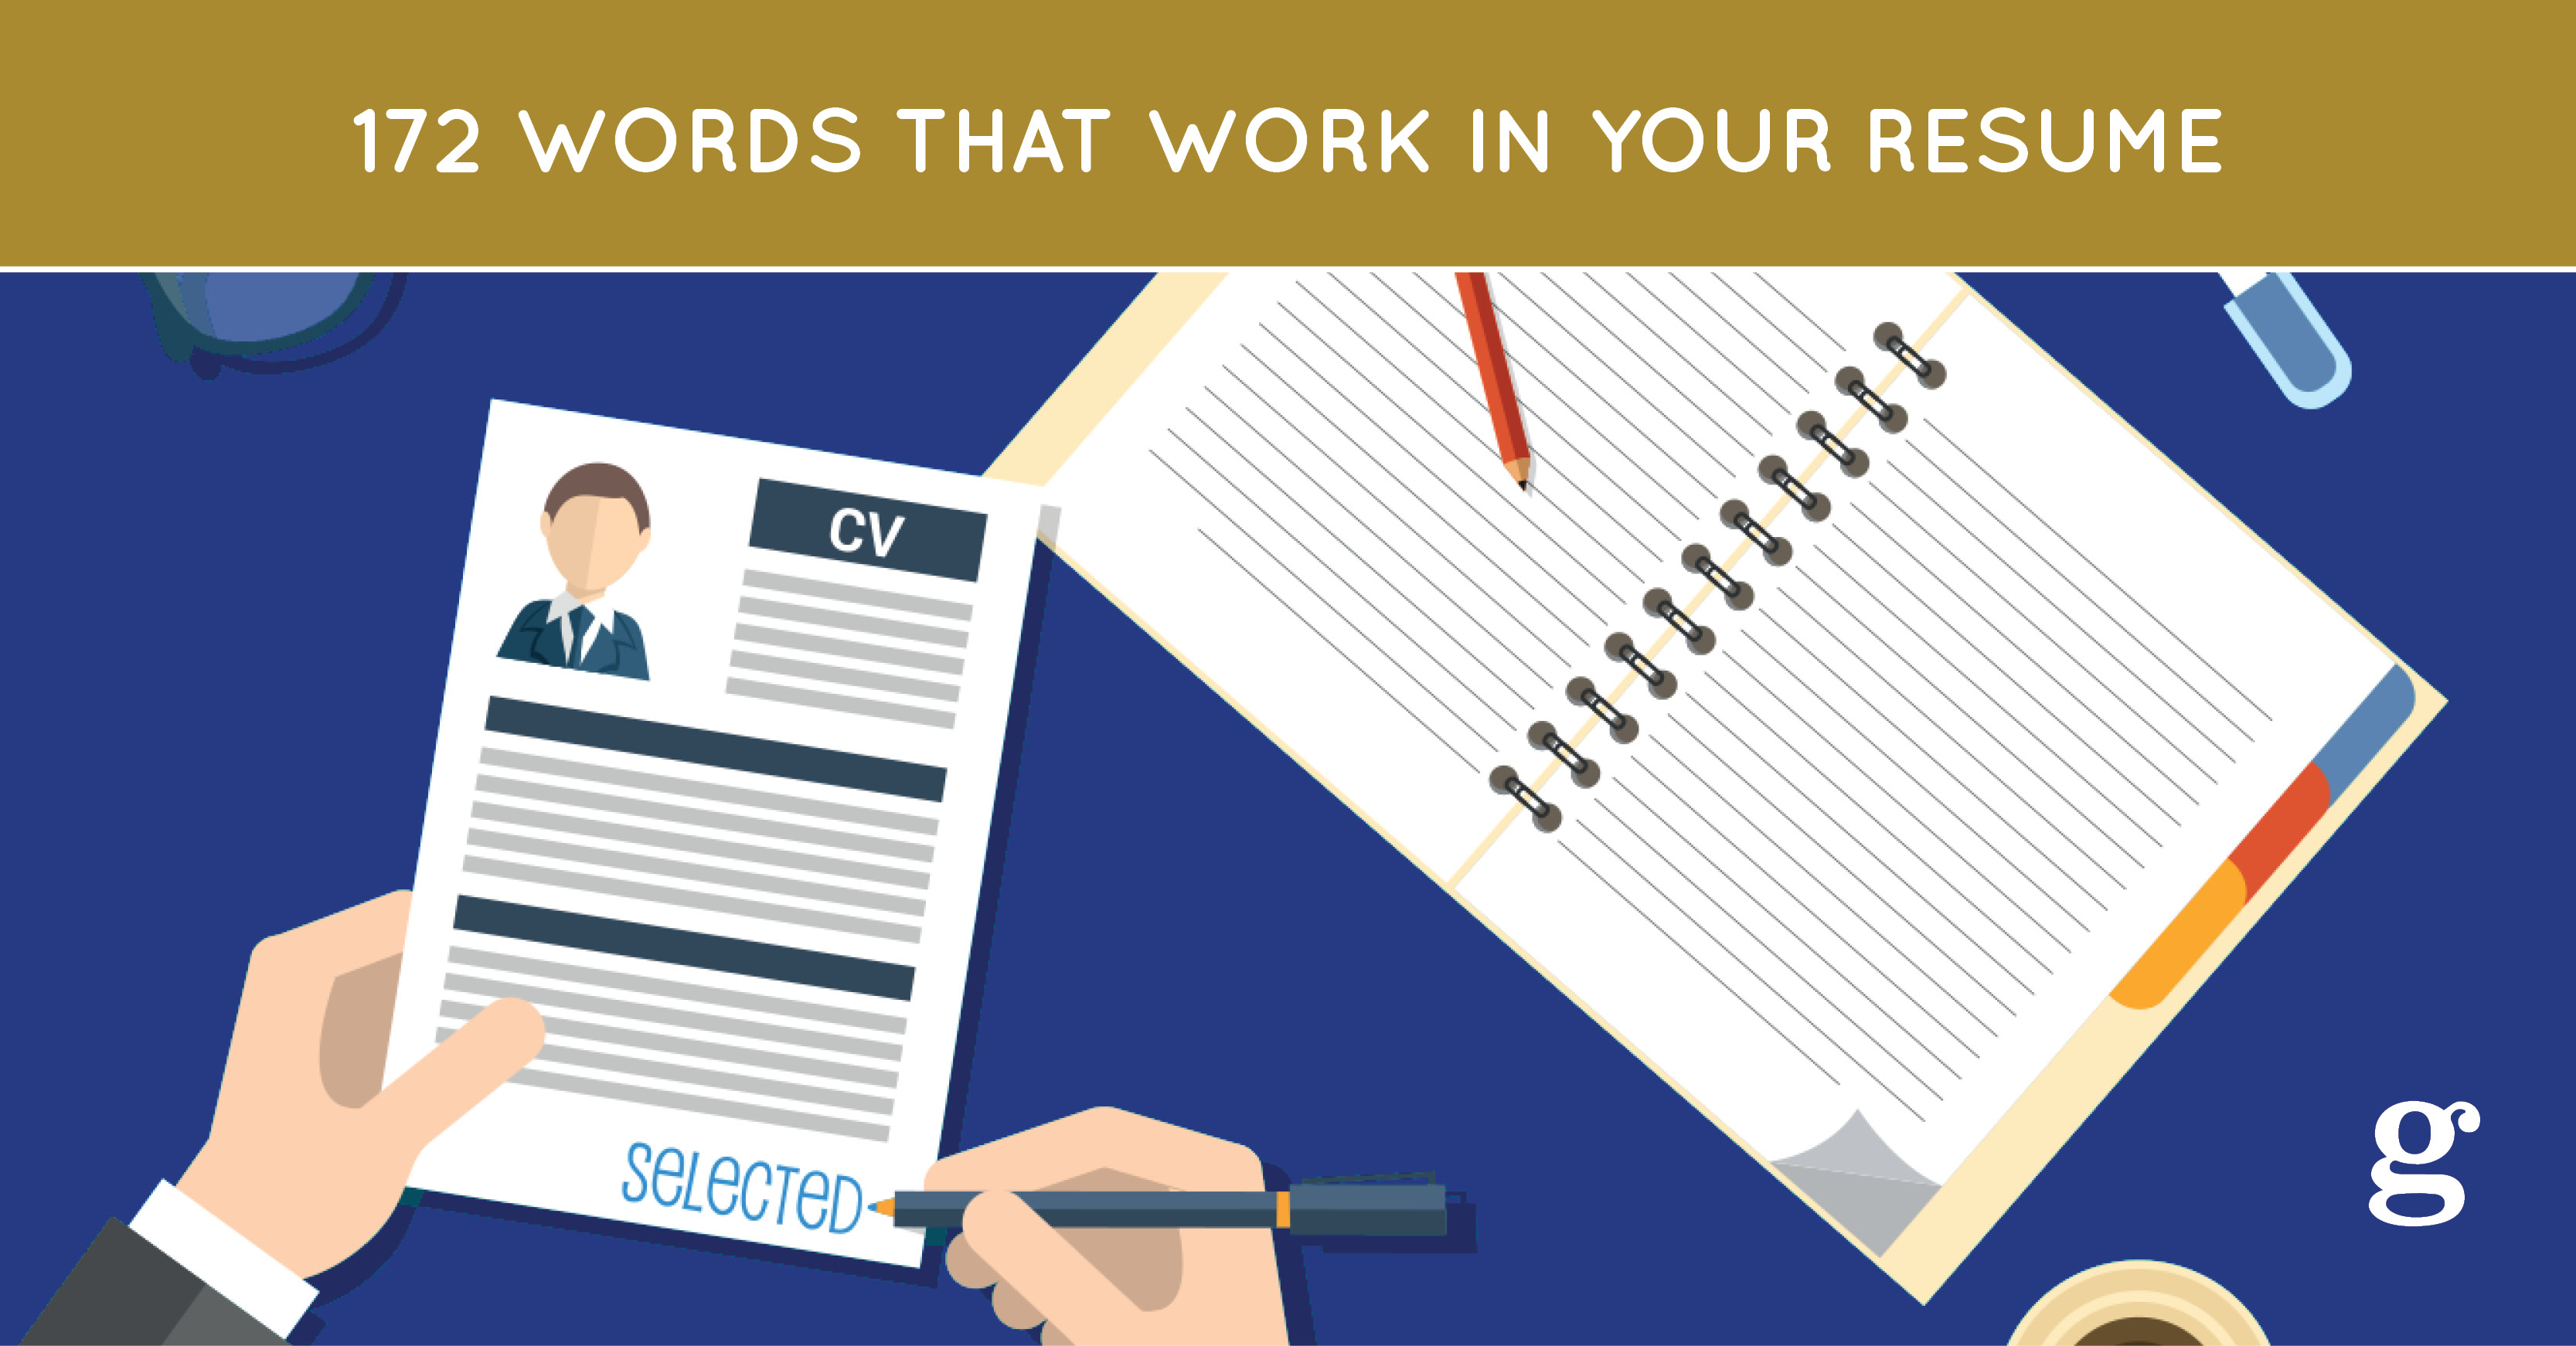 172 words that work in your resume